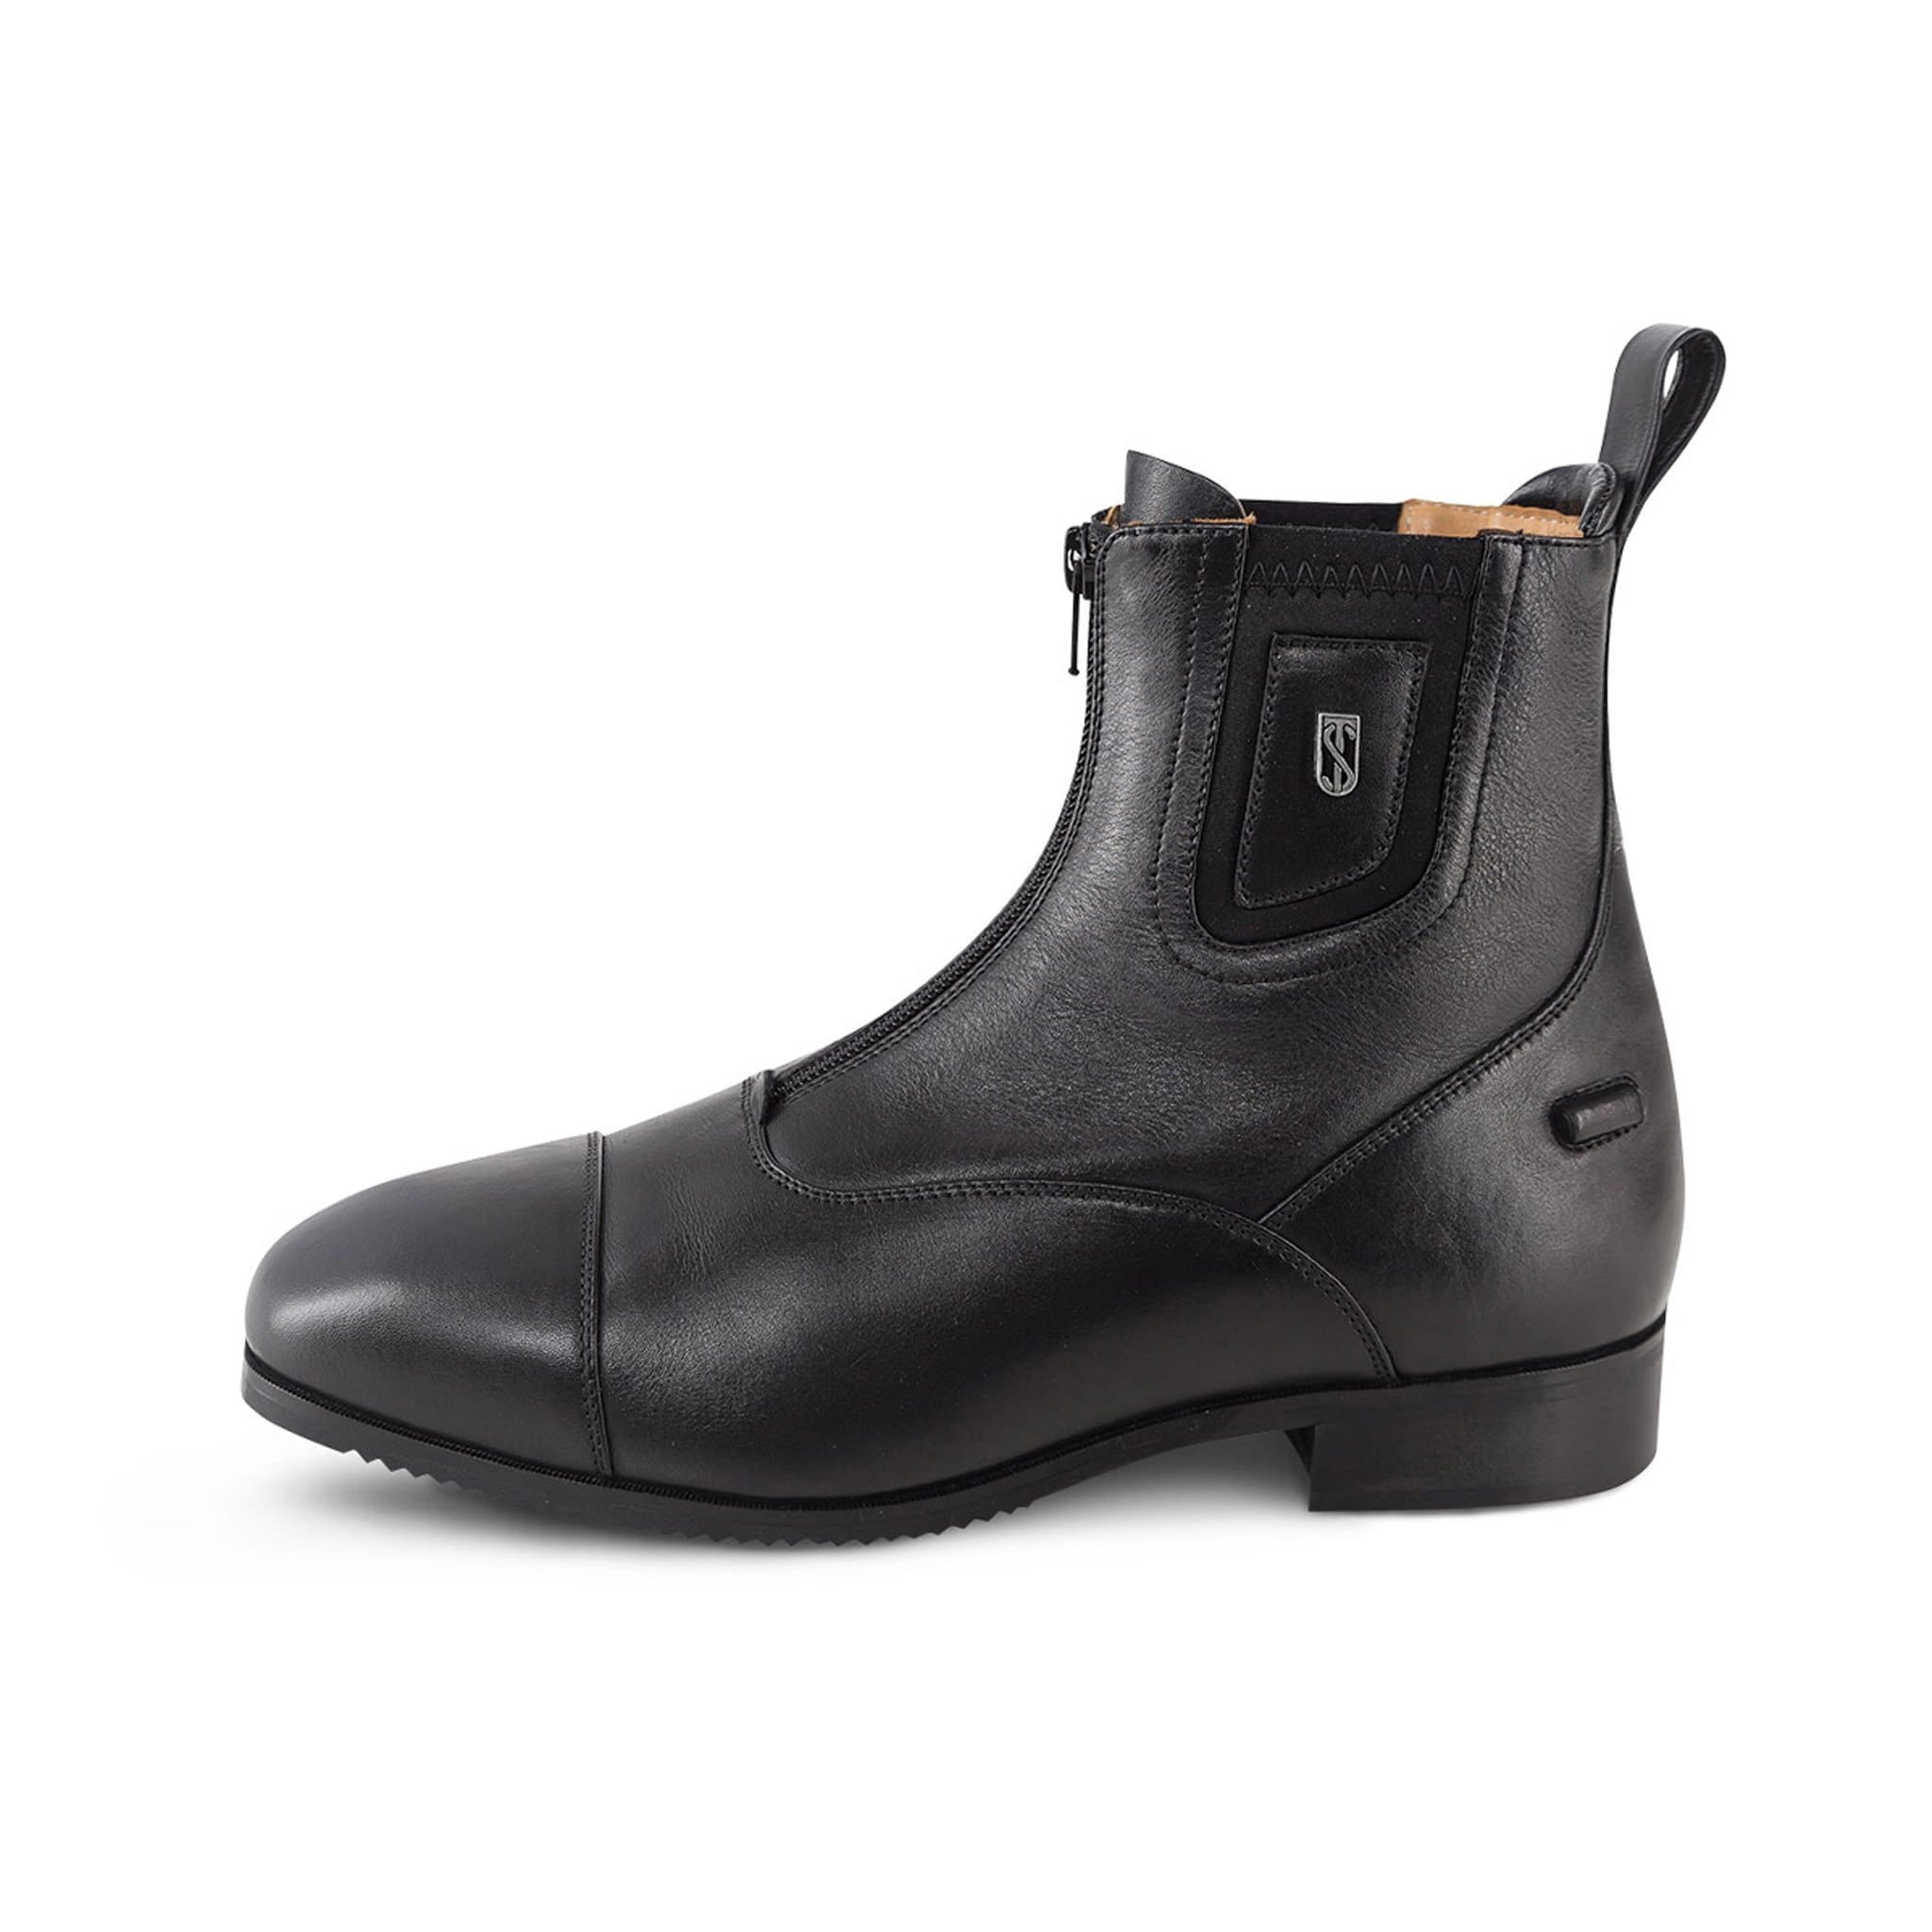 Tredstep Medici II Paddock Boot with Front Zip Black